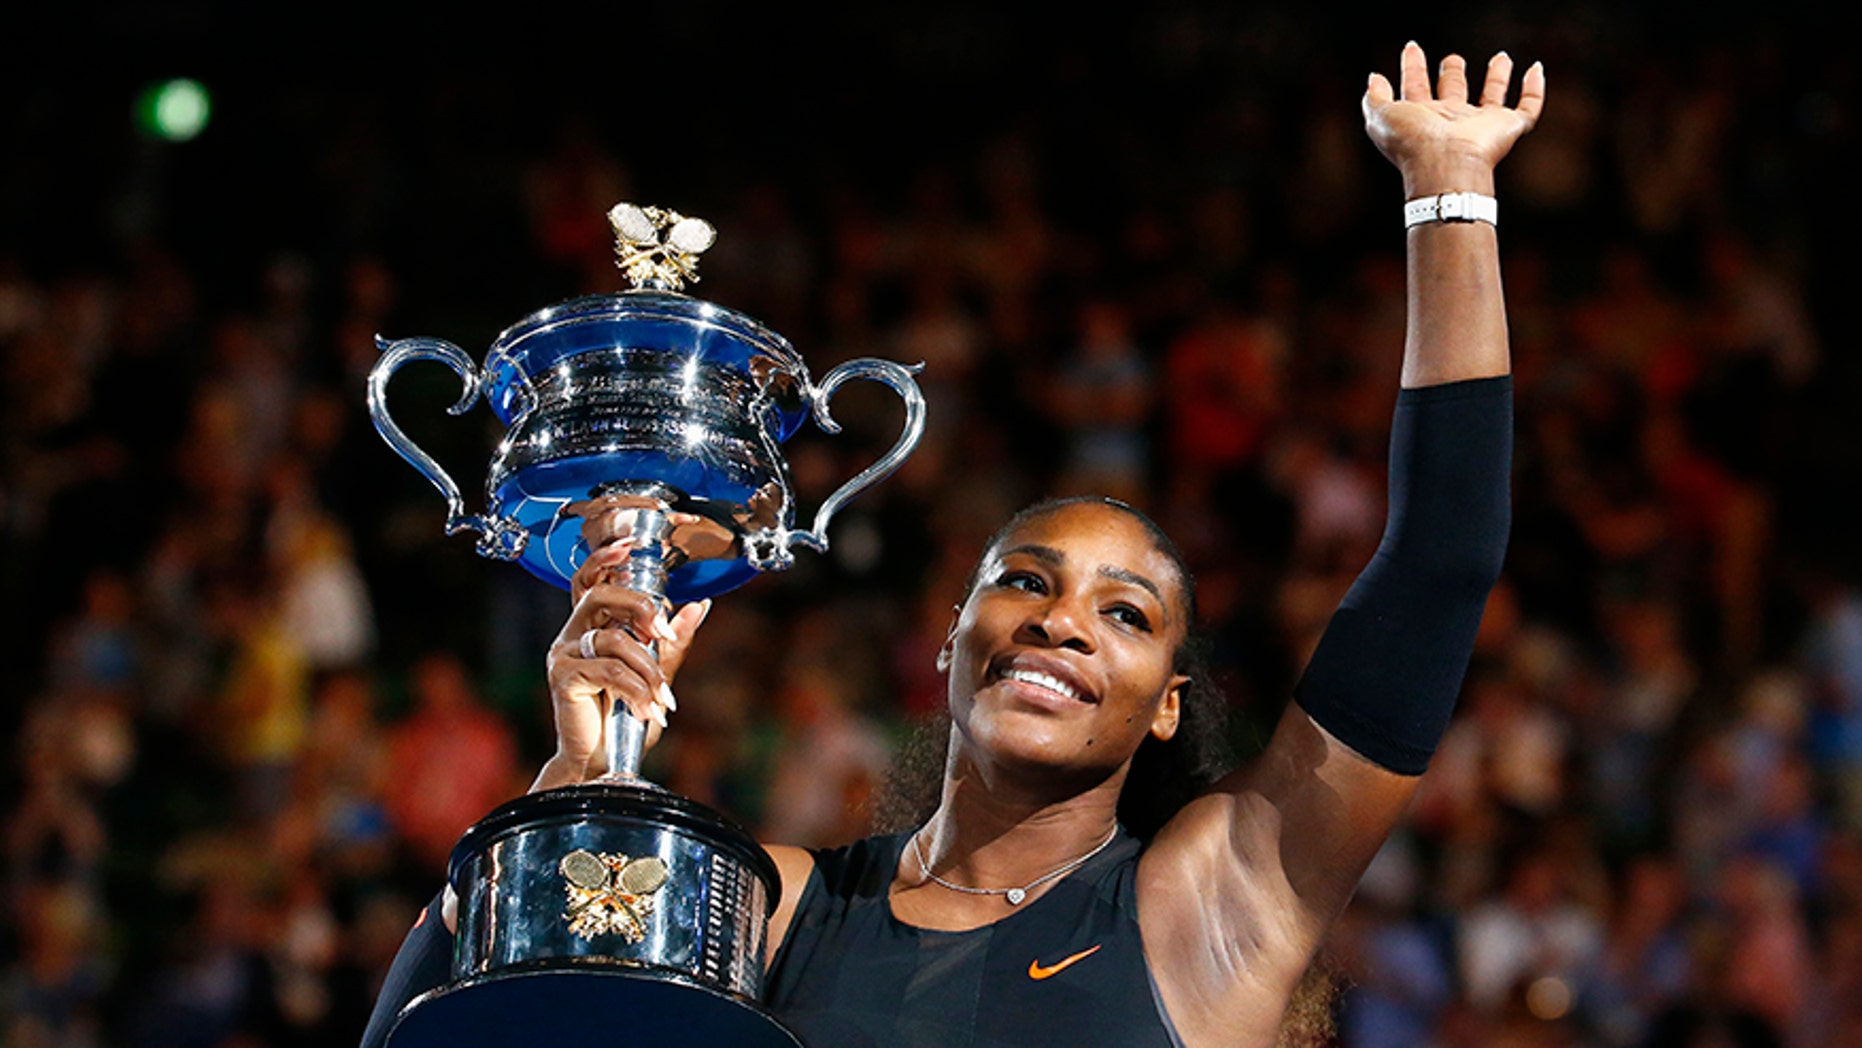 Tennis star Serena Williams gave birth to a girl on Friday according to local media reports.